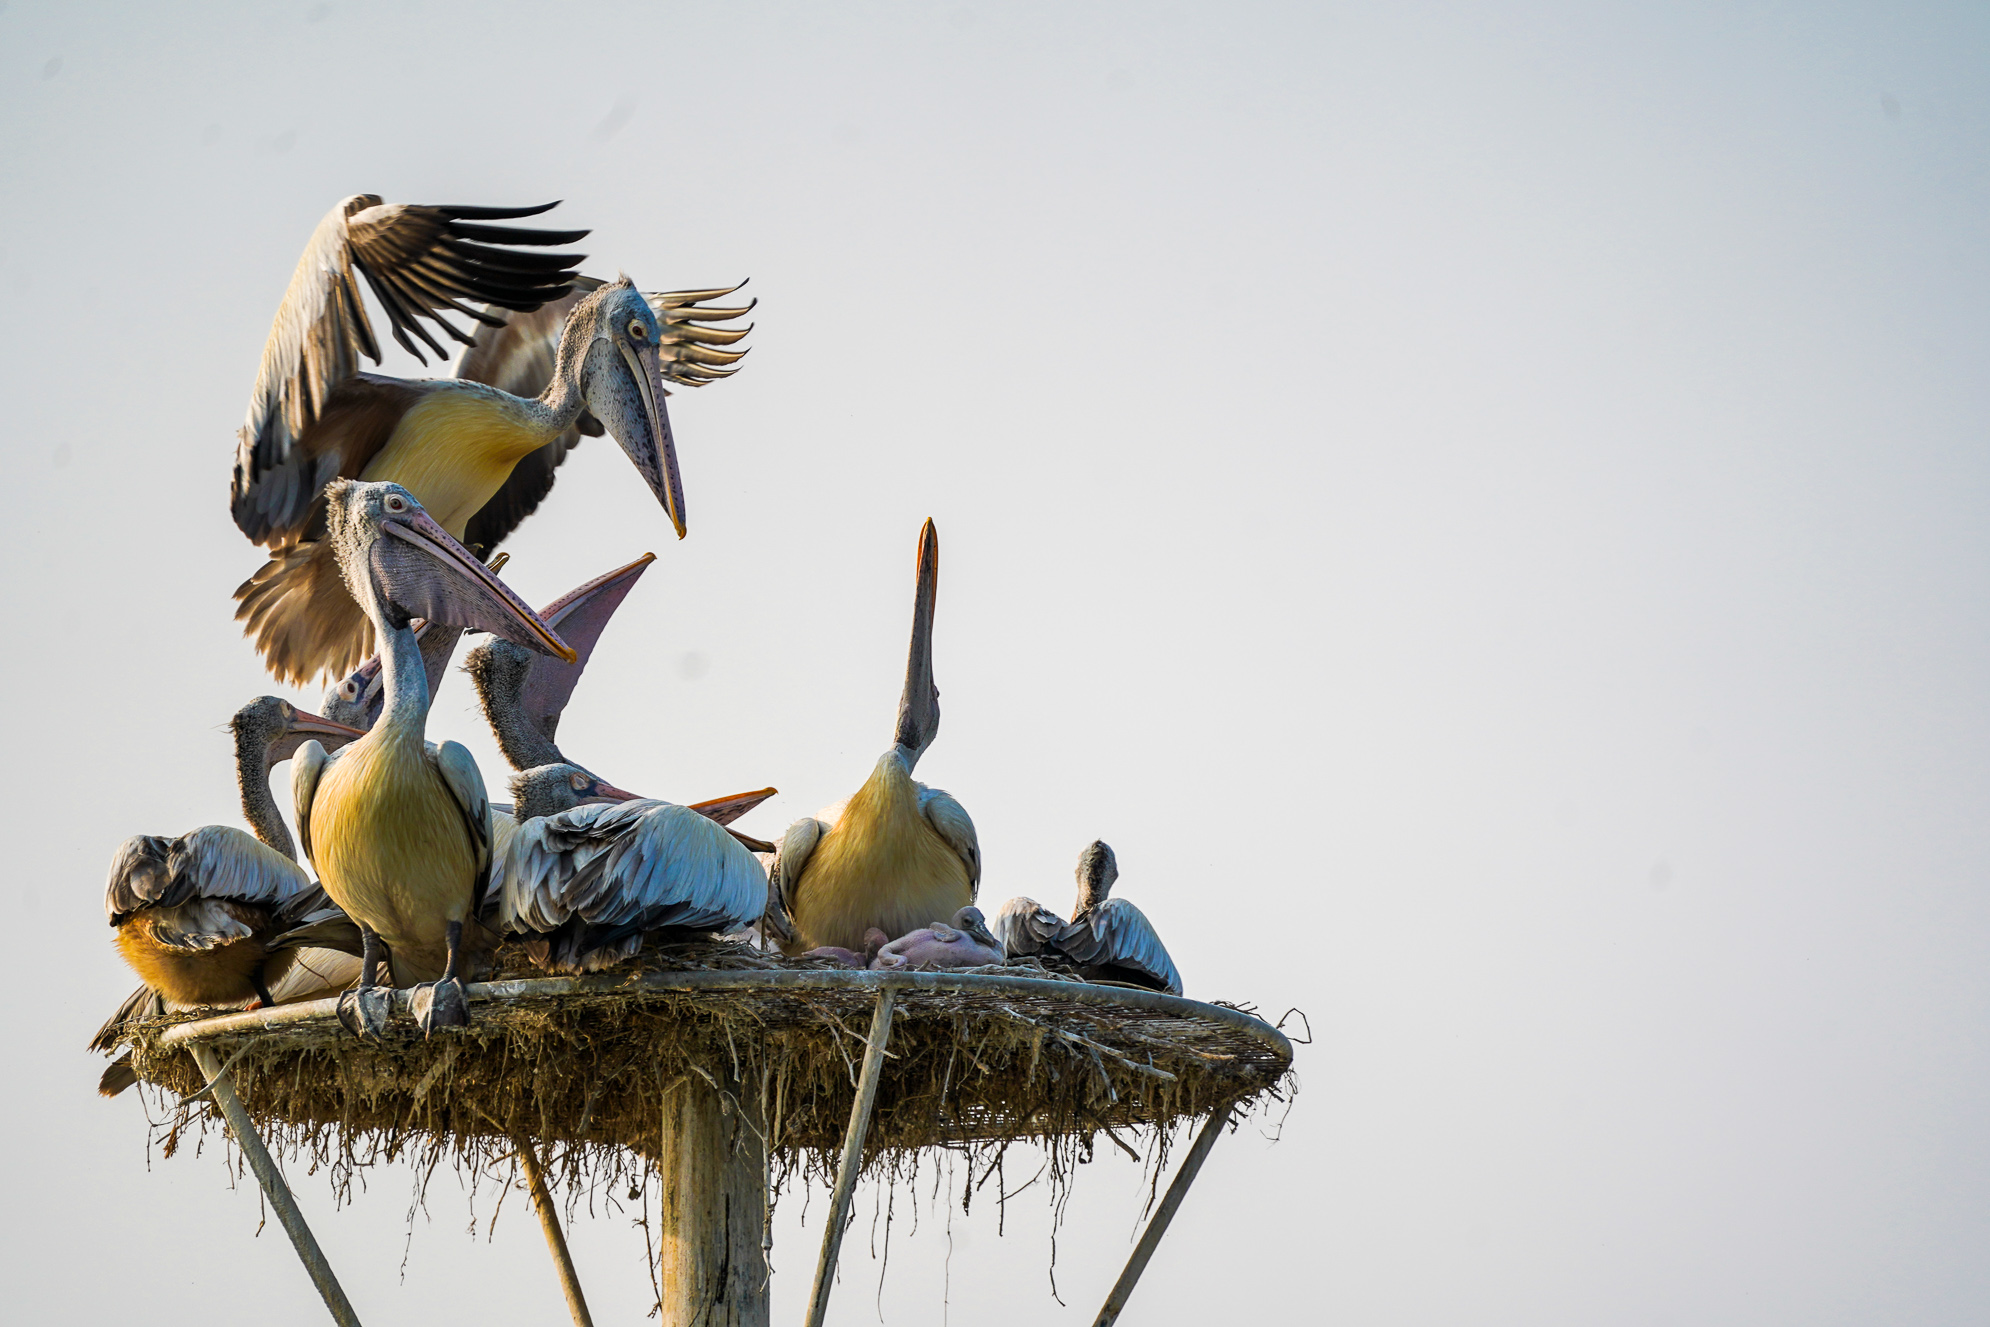 Pelican after roaming around the kolleru lake came to its nest which is her home . 